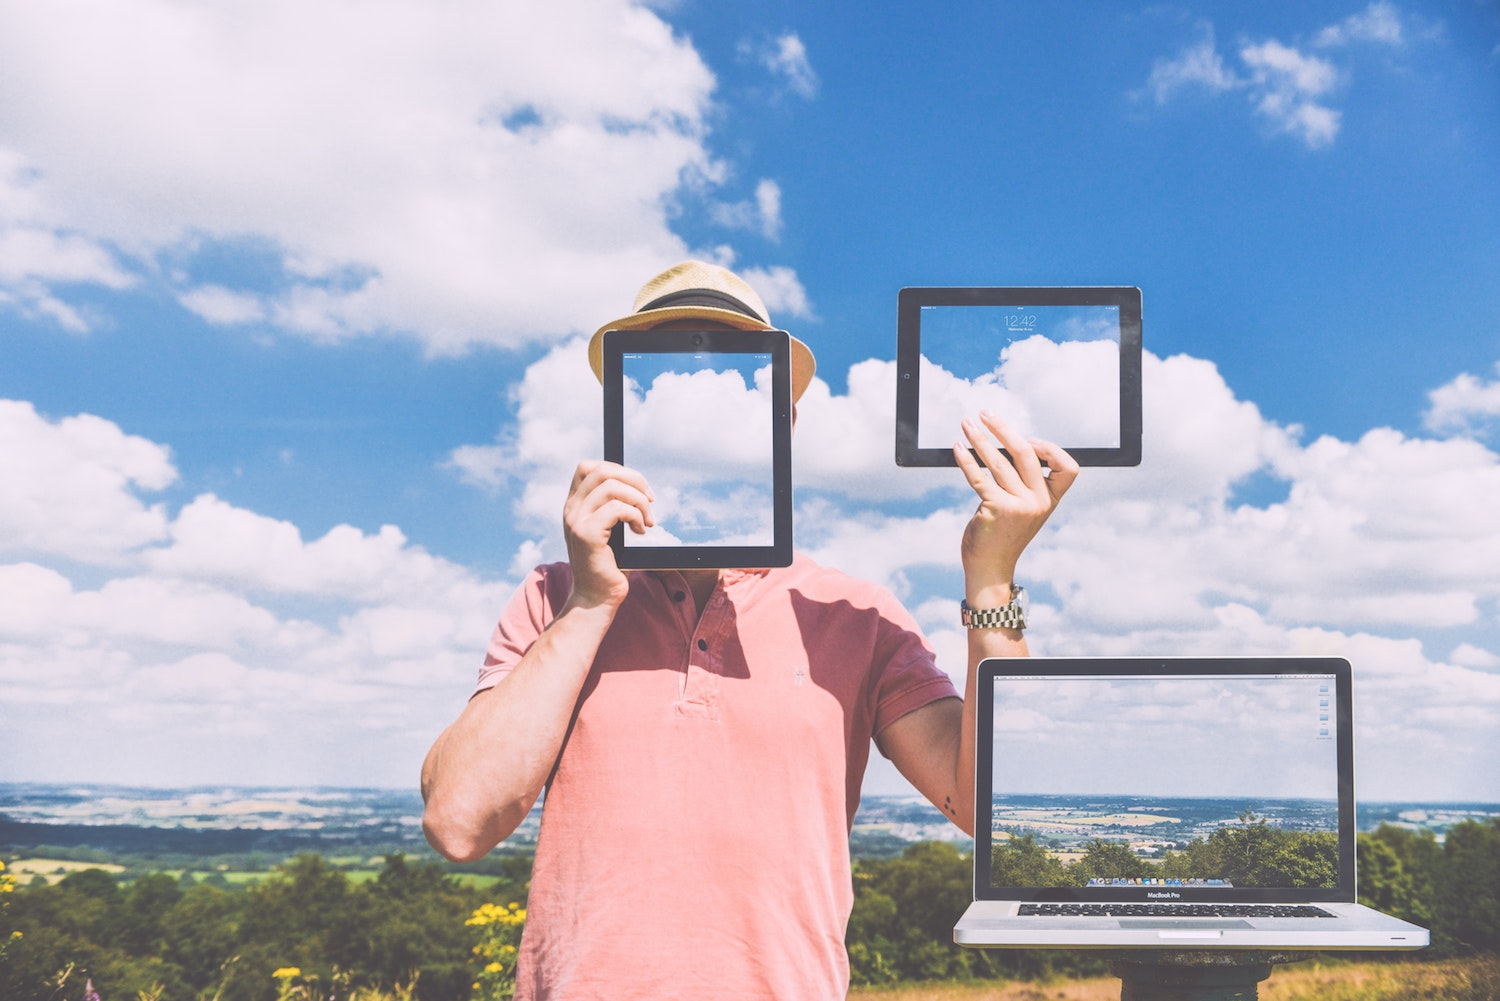 anonymous vpn ad with man covering his face with tablets and laptops in clouds